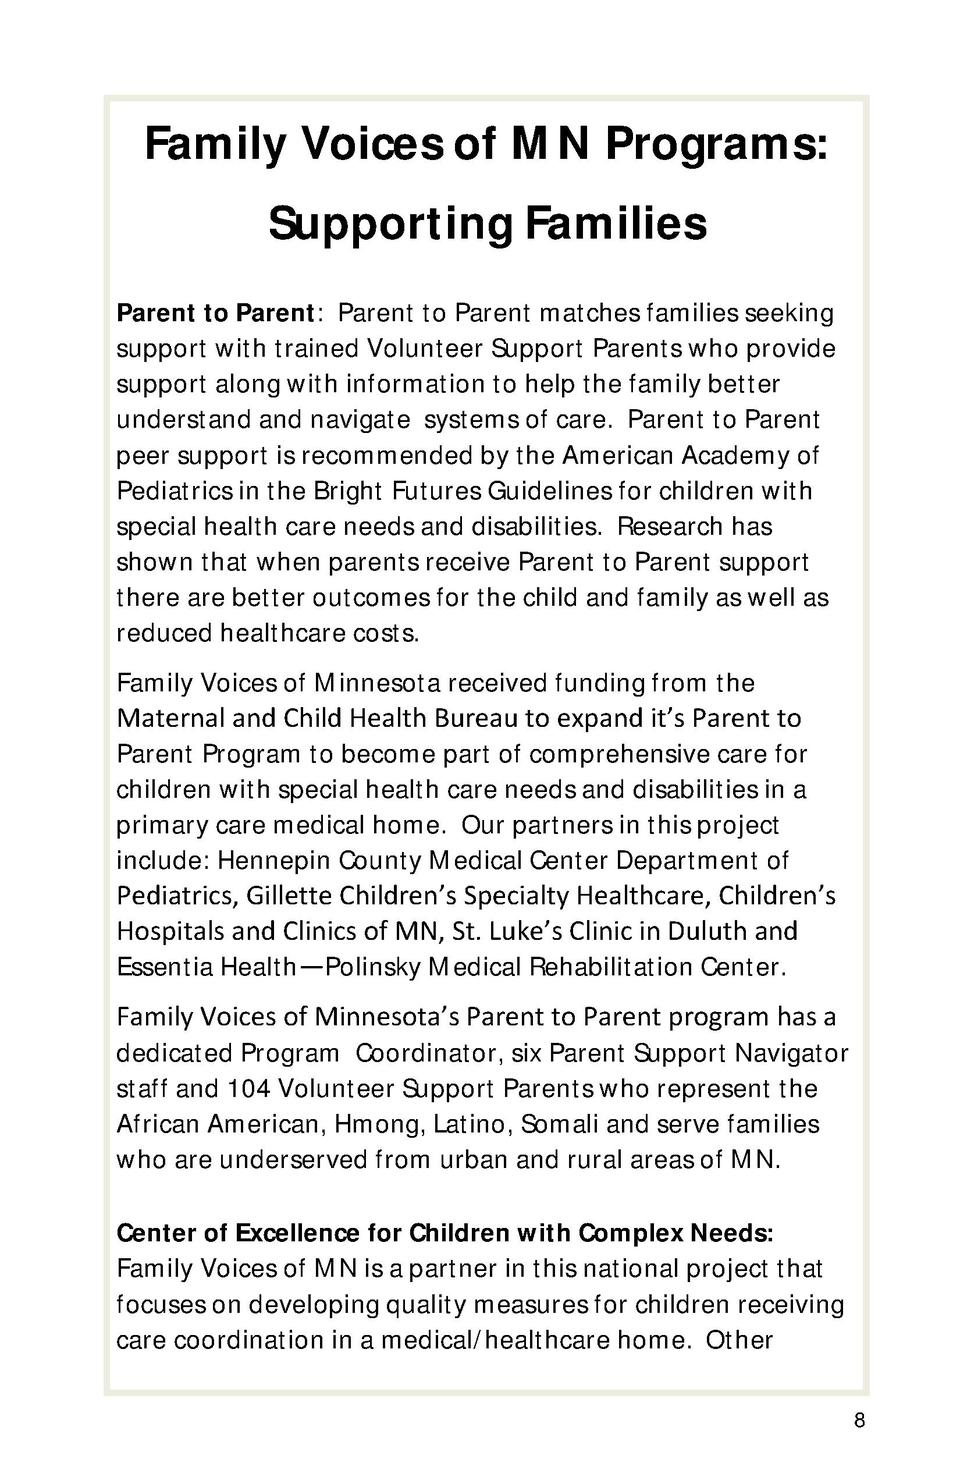 Family Voices of MN Programs  Supporting Families Parent to Parent  Parent to Parent matches families seeking support with...